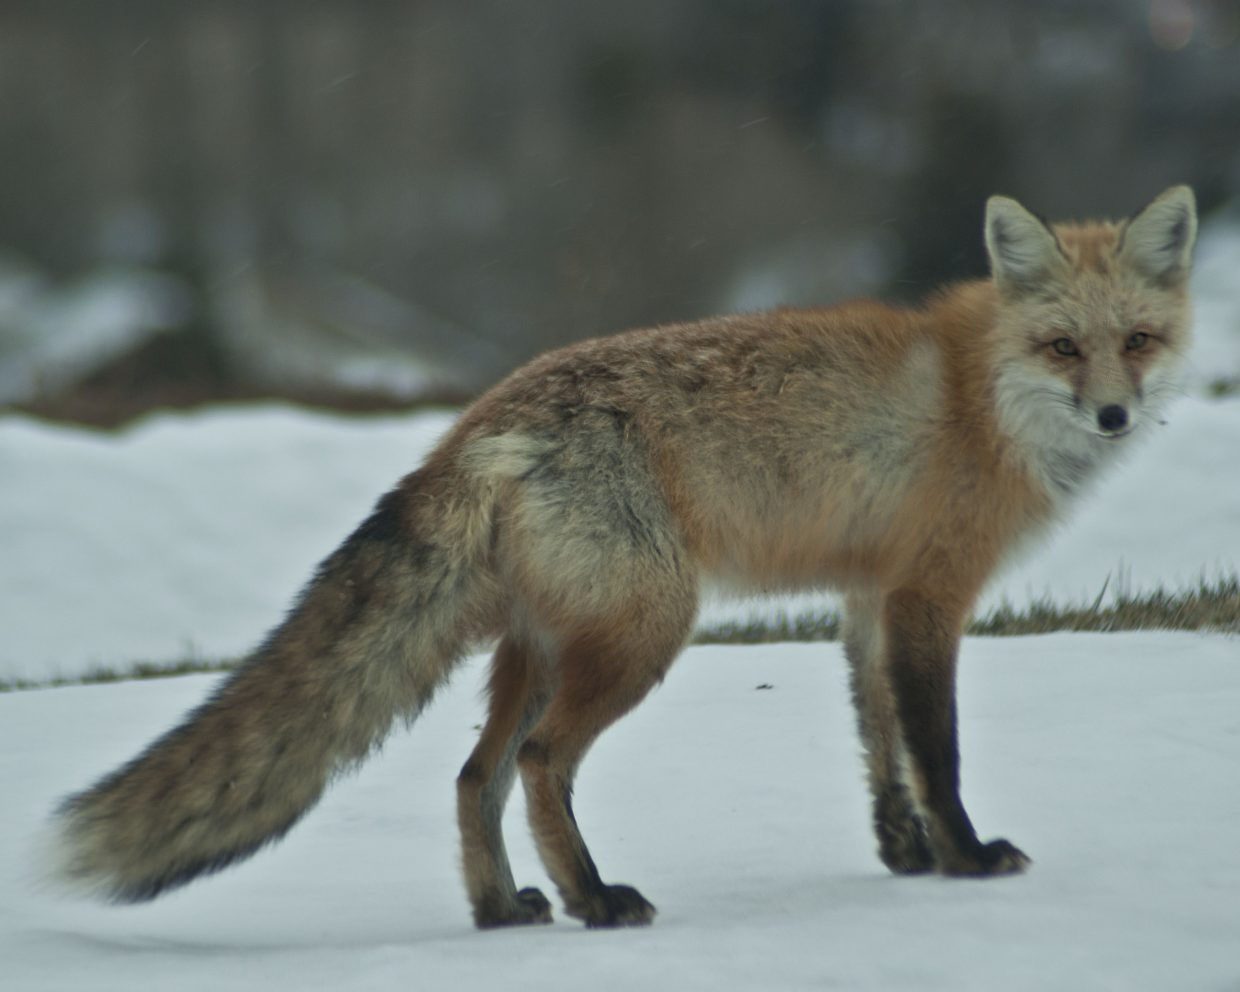 Fox hunting in the snow. Submitted by: Rachel Murphy